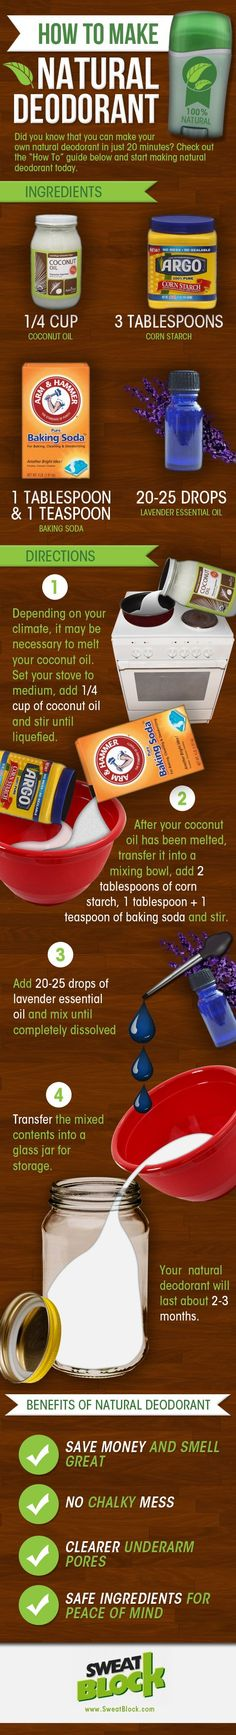 How To Make Natural Deodorant [infographic]